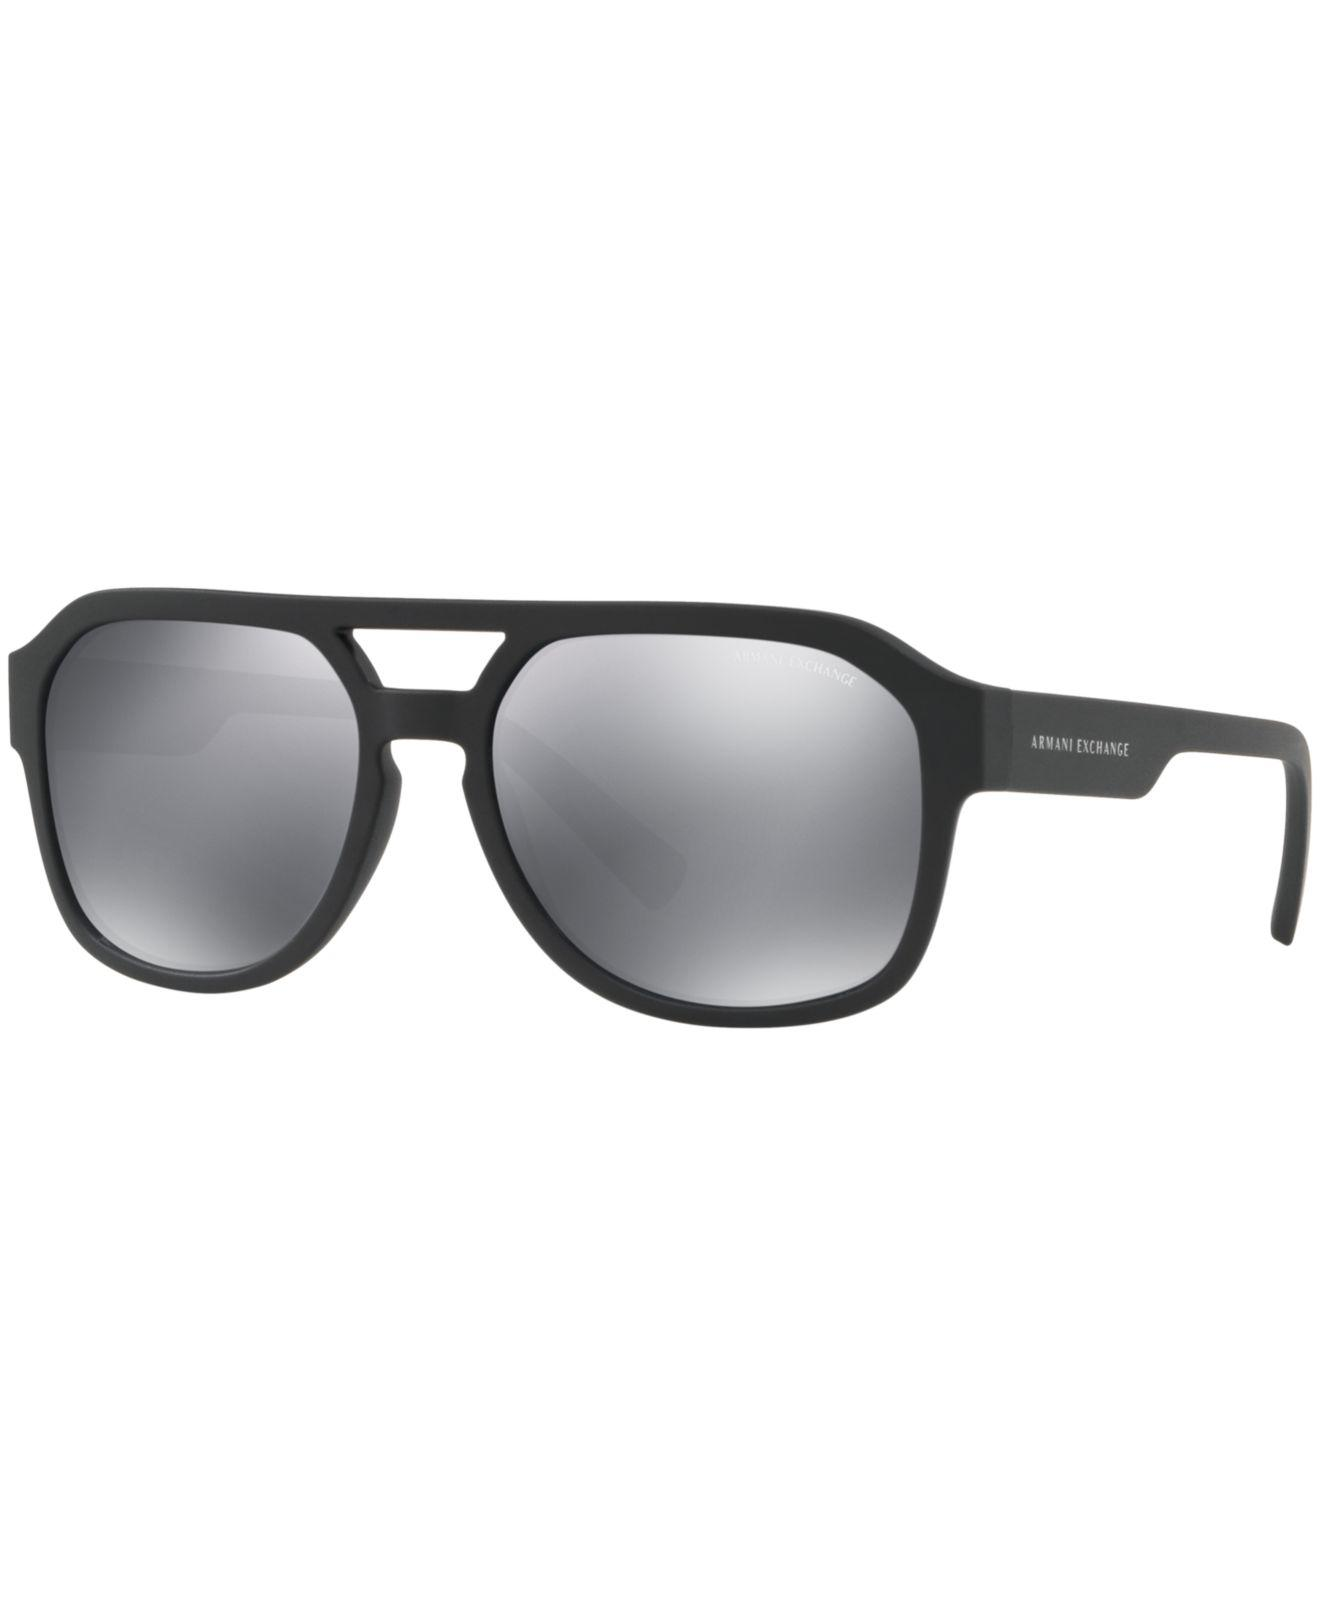 7e43601d2ea Armani Exchange - Black Ax4074s for Men - Lyst. View fullscreen